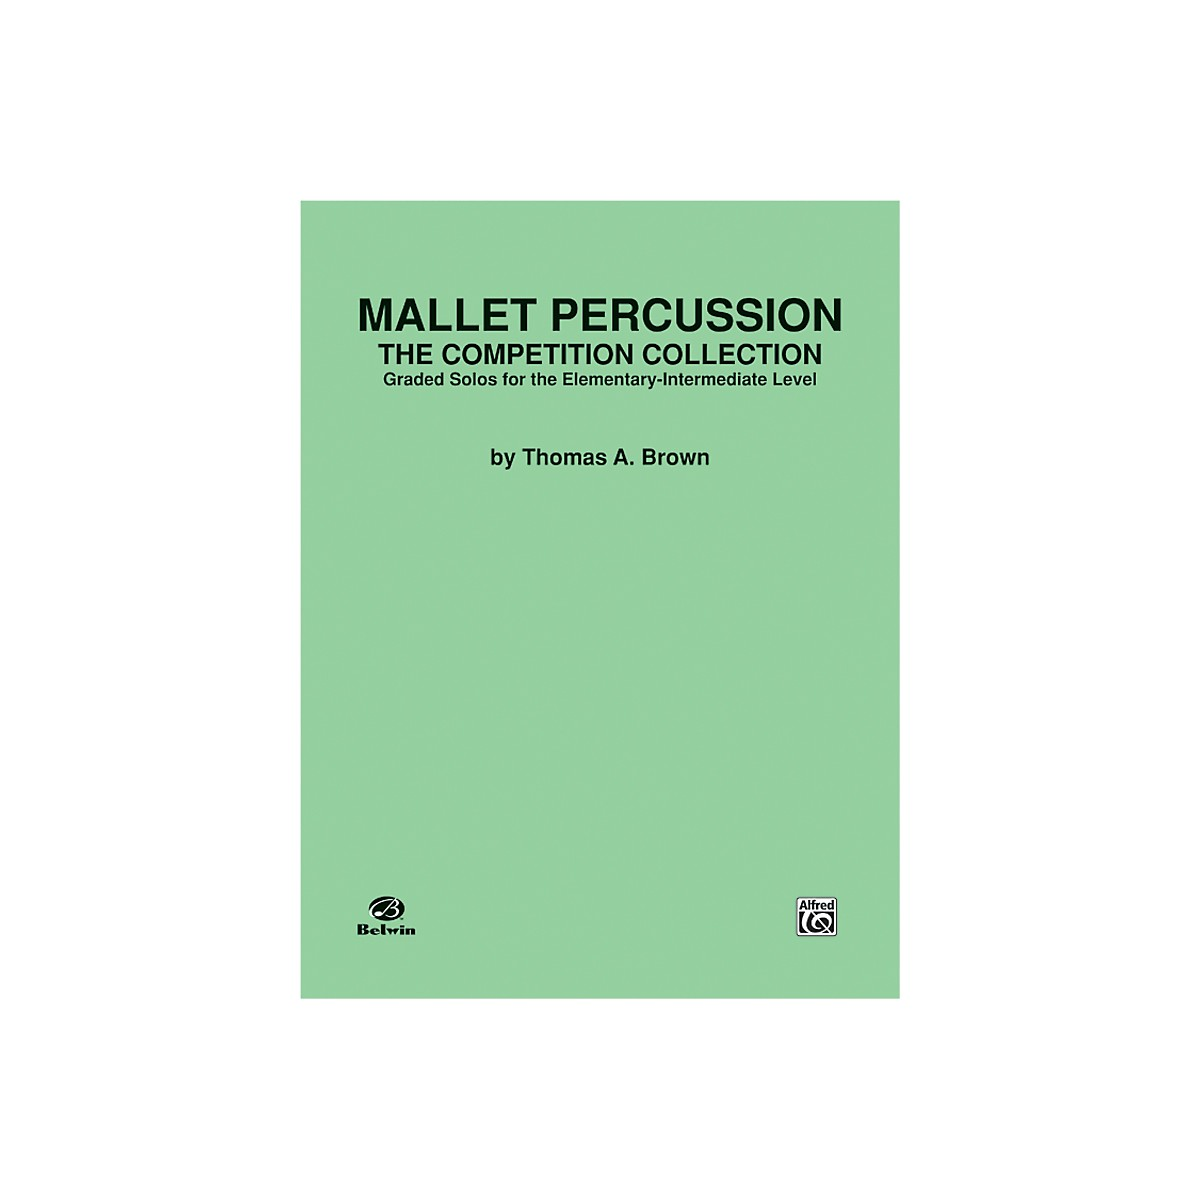 Alfred Mallet Percussion The Competition Collection Book